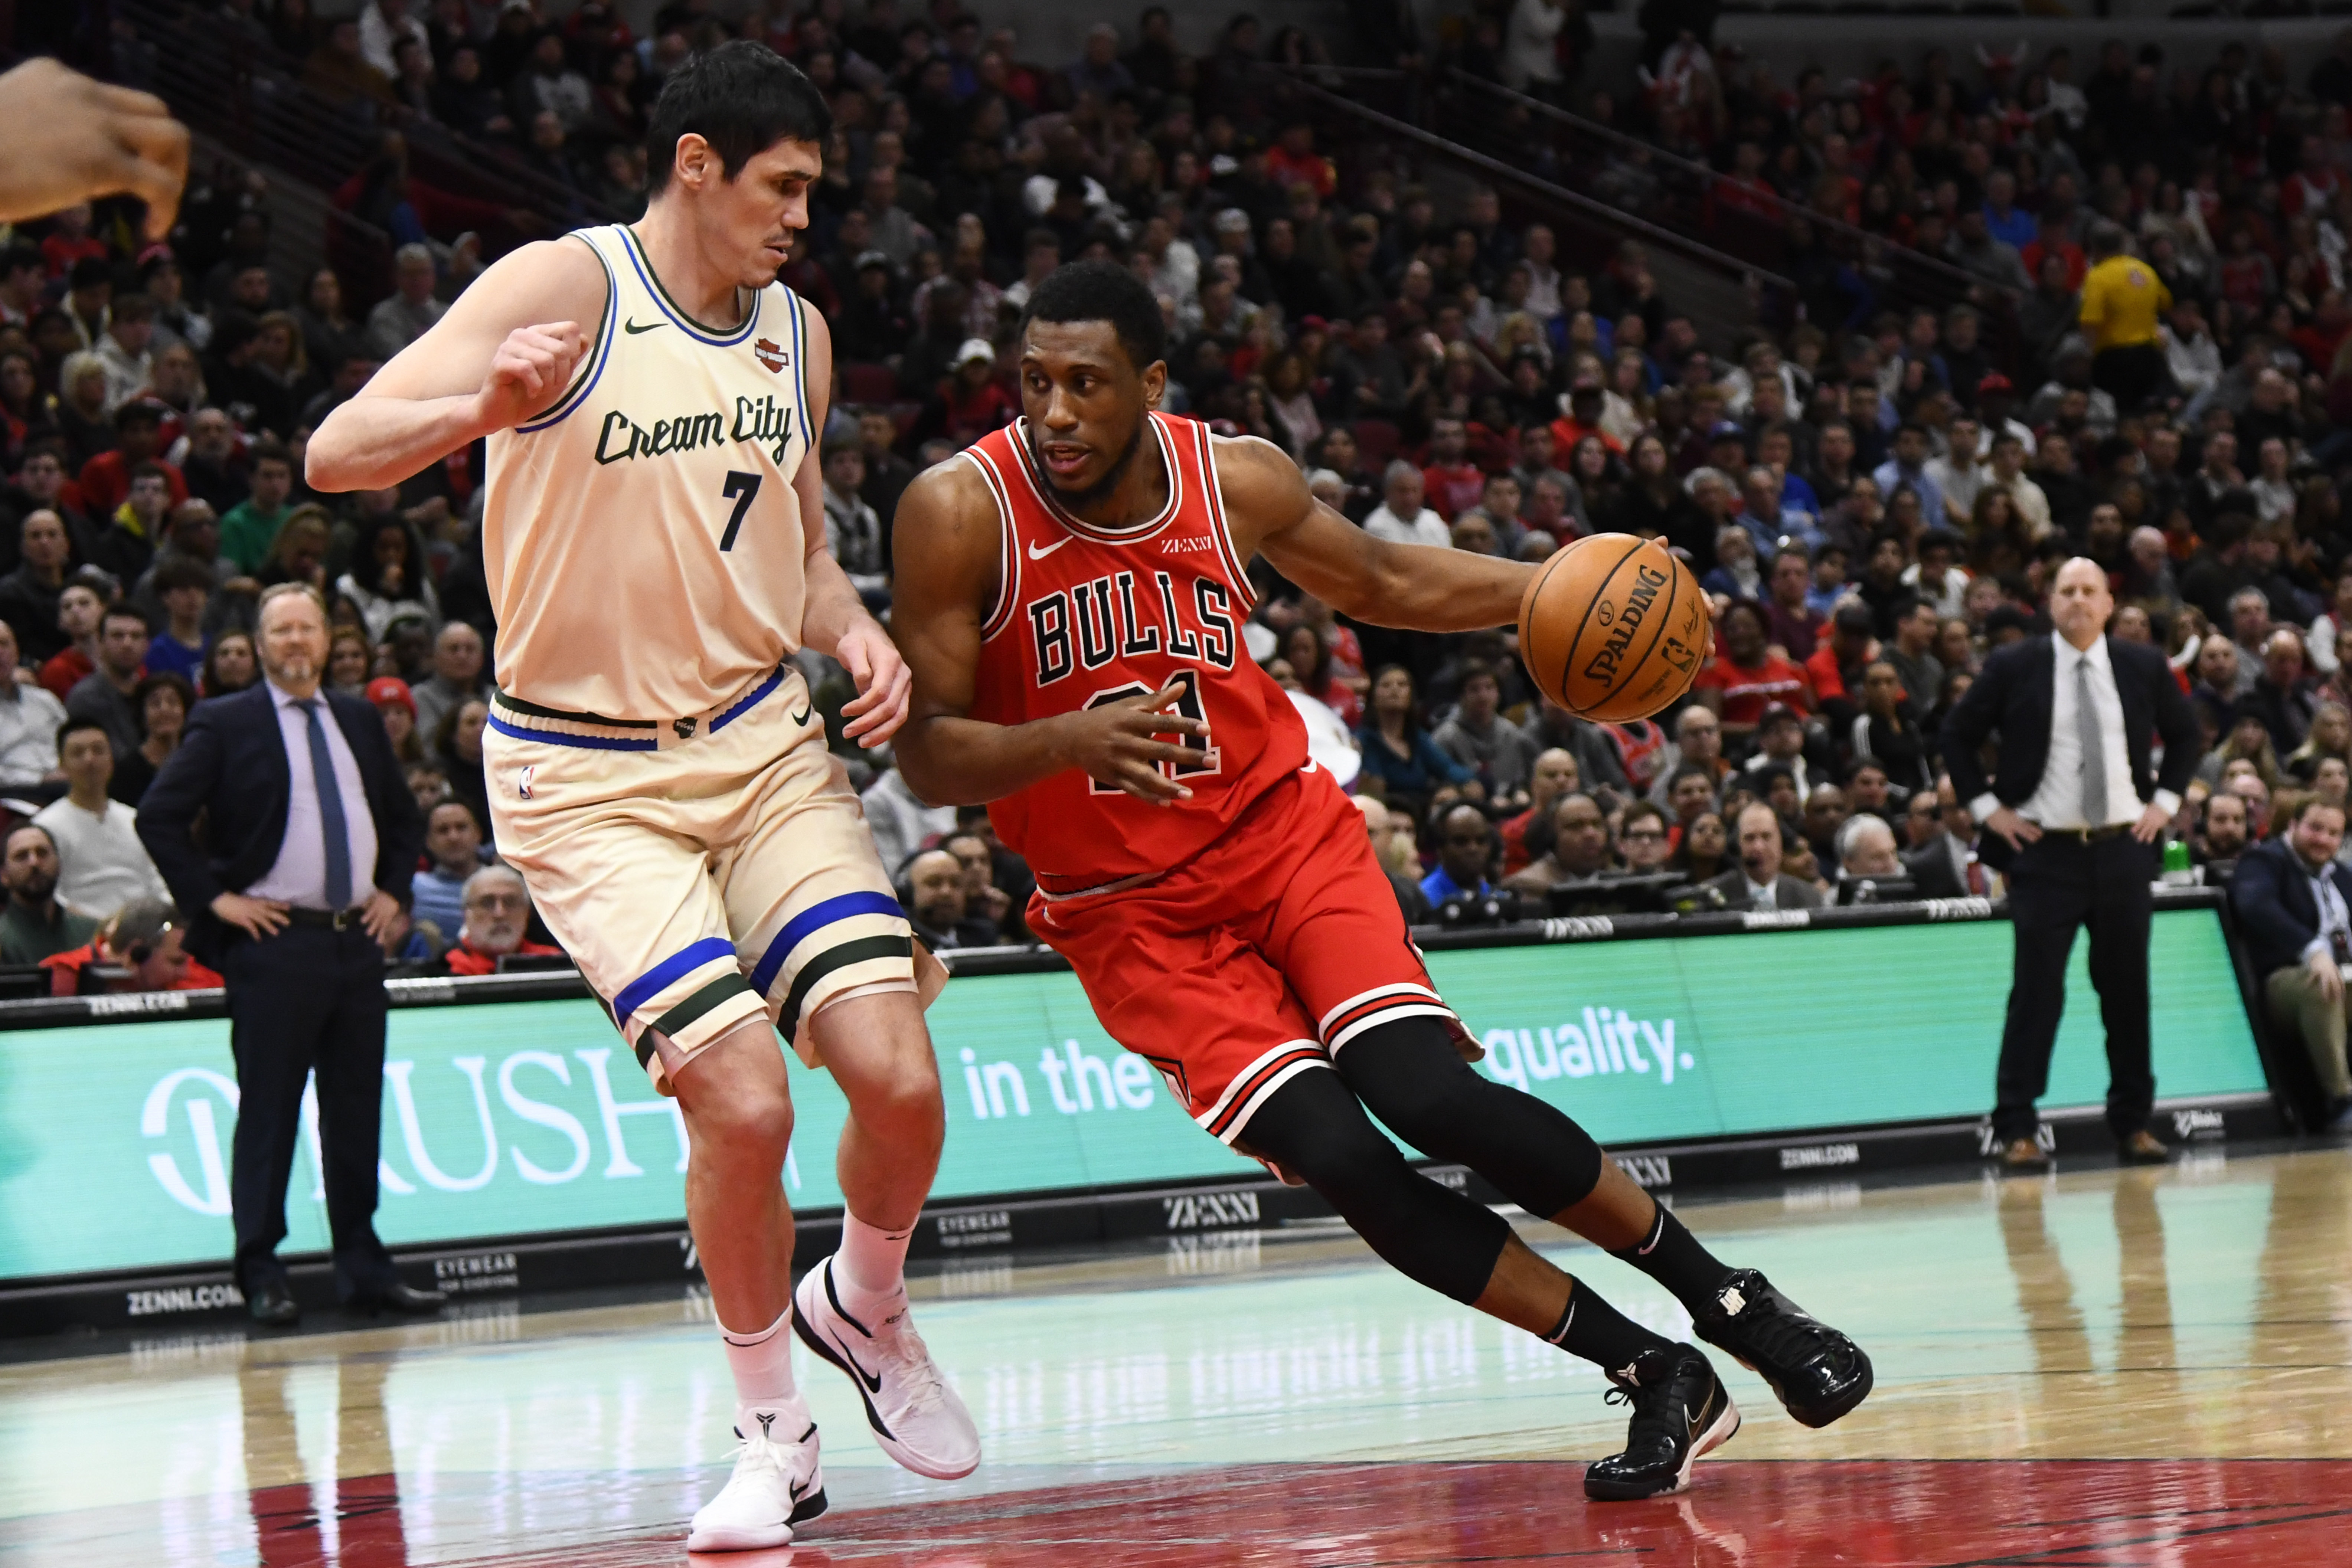 Since there don't seem to be enough minutes for both him and Lauri Markkanen, it's time for the Bulls to trade Thaddeus Young.